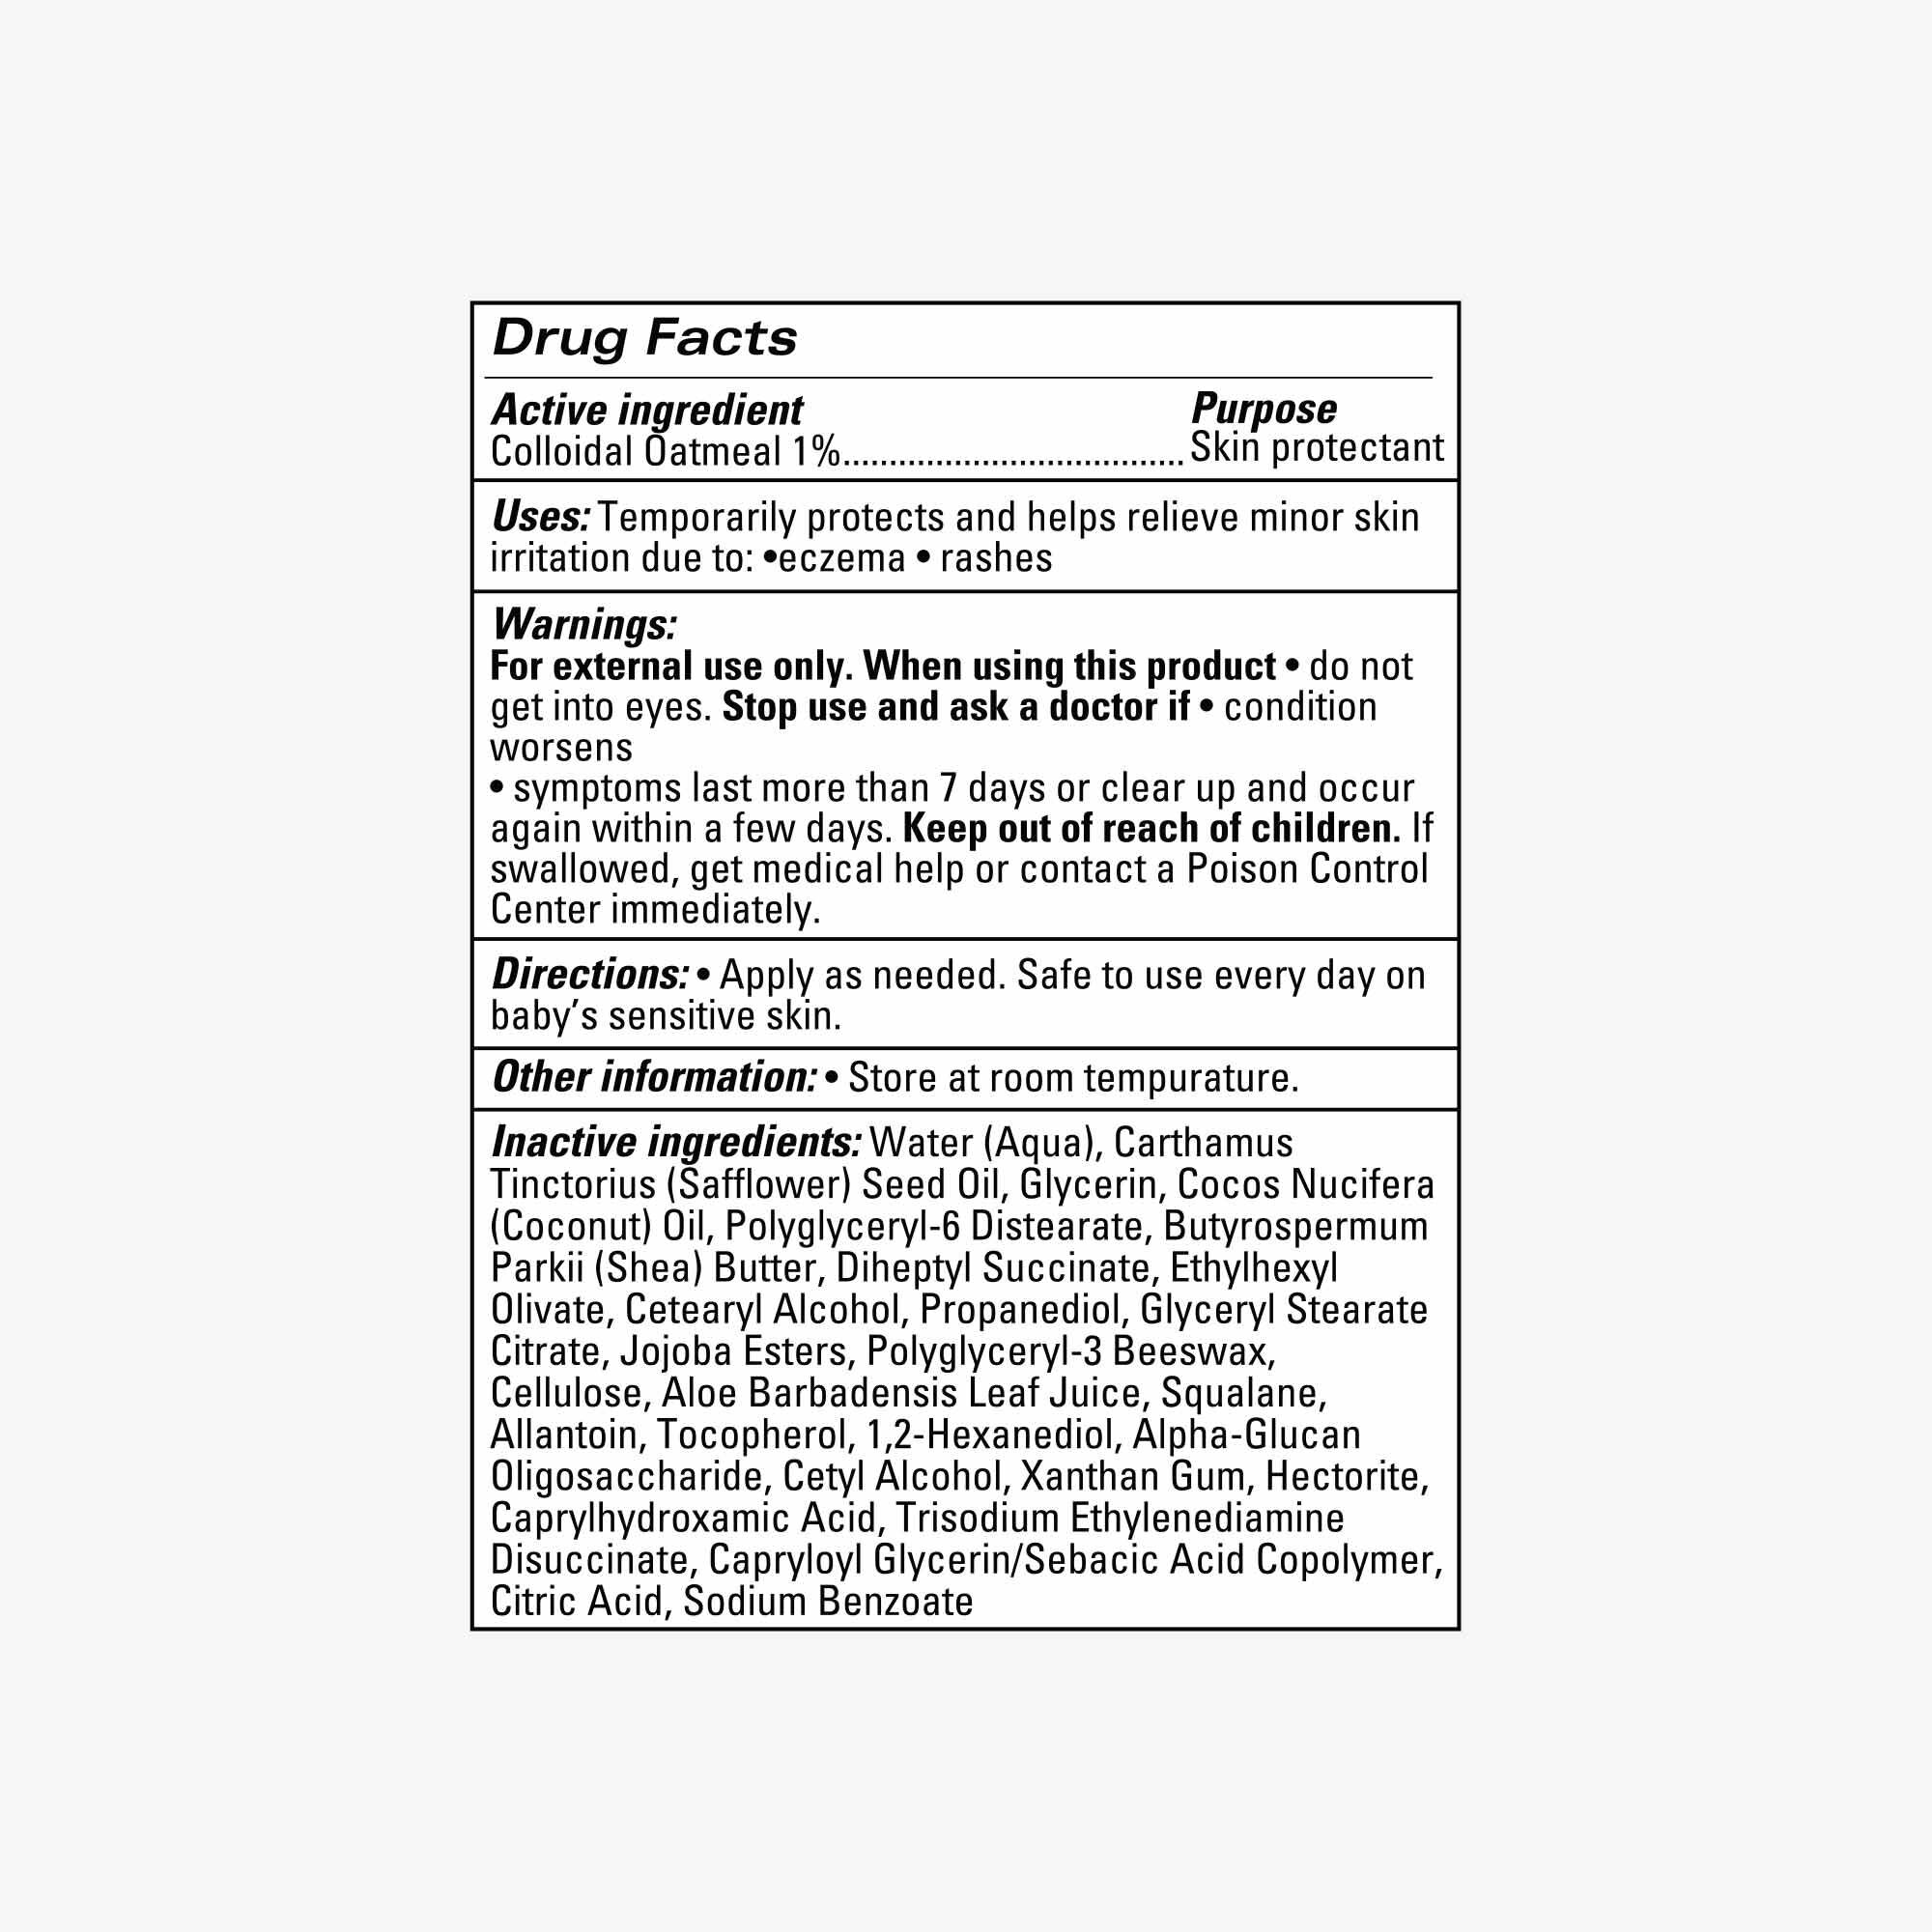 Soothing Therapy Cream drug fact panel